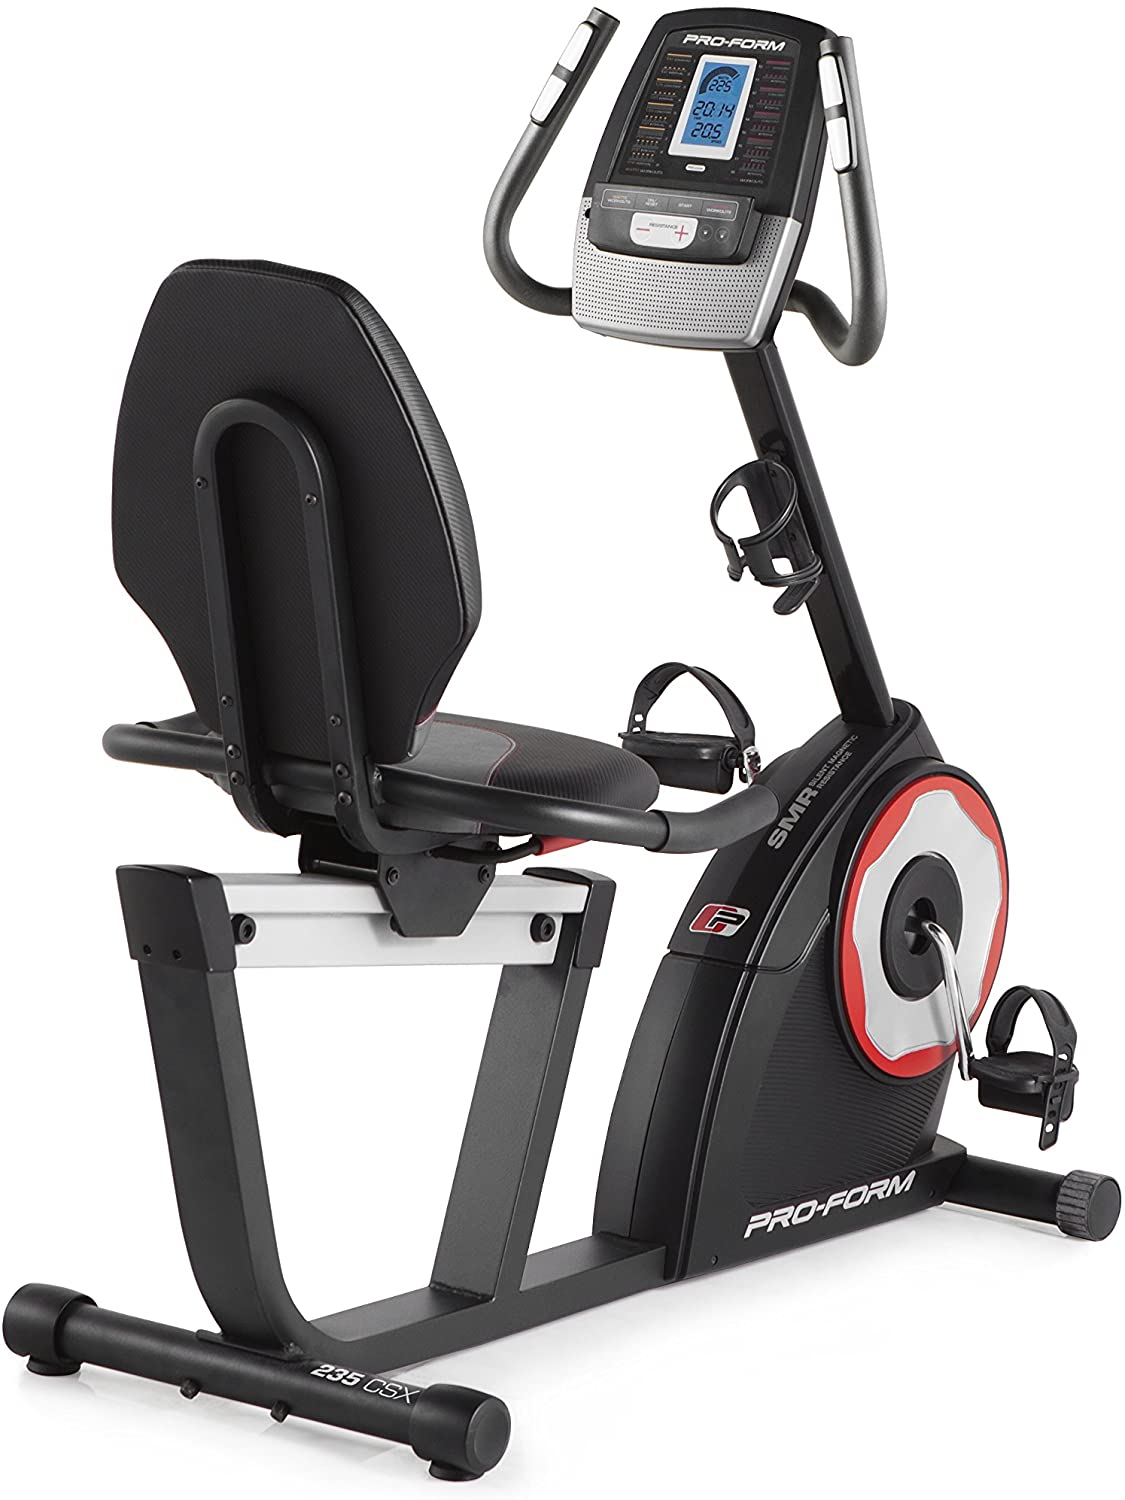 Best Exercise Bikes for Back Problems in 2021 - [Reviews]